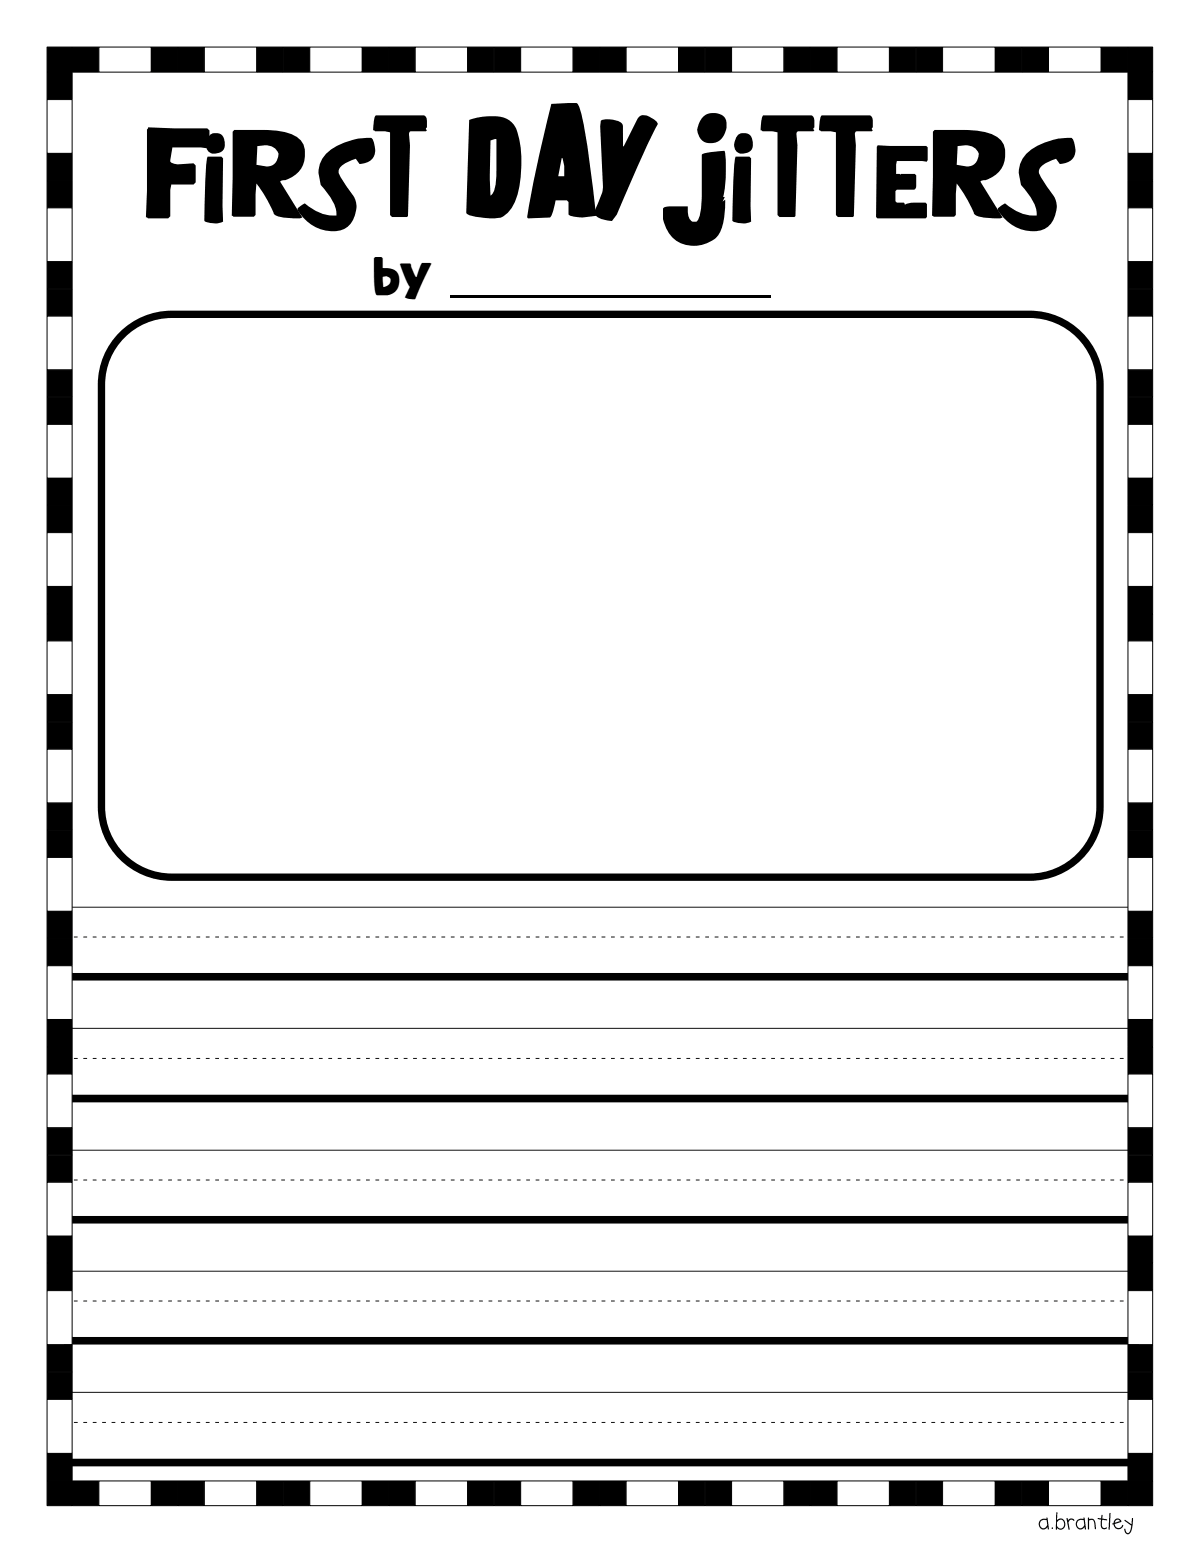 worksheet First Day Jitters Worksheets first day jitters pdf good ideas pinterest school pdf